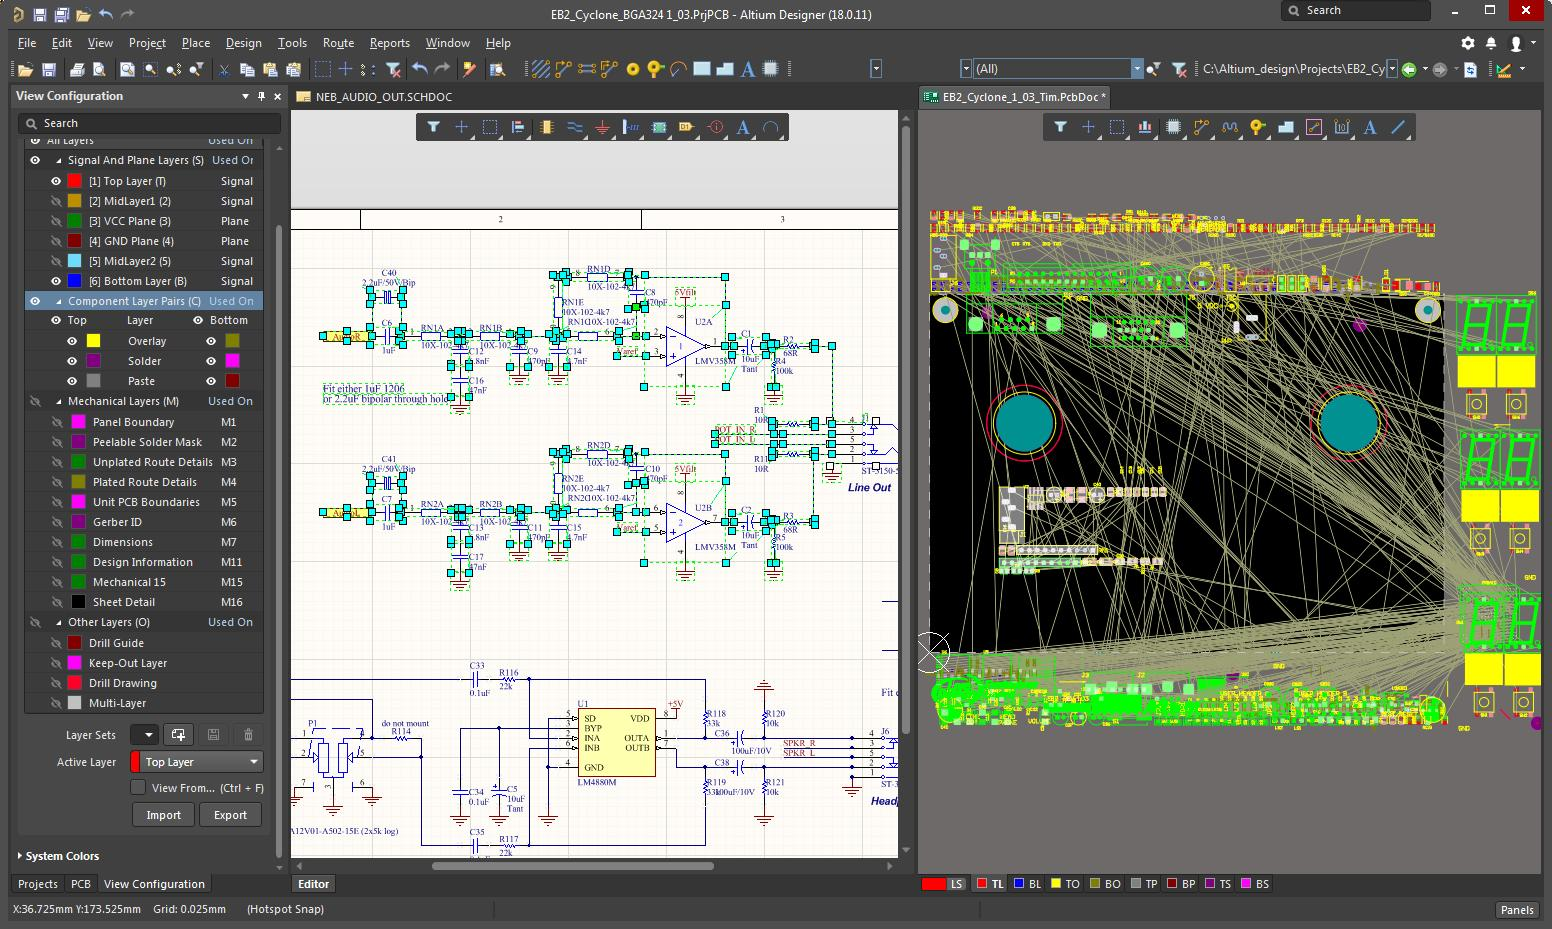 Screen capture of AD with selected components from the schematic placed in layout